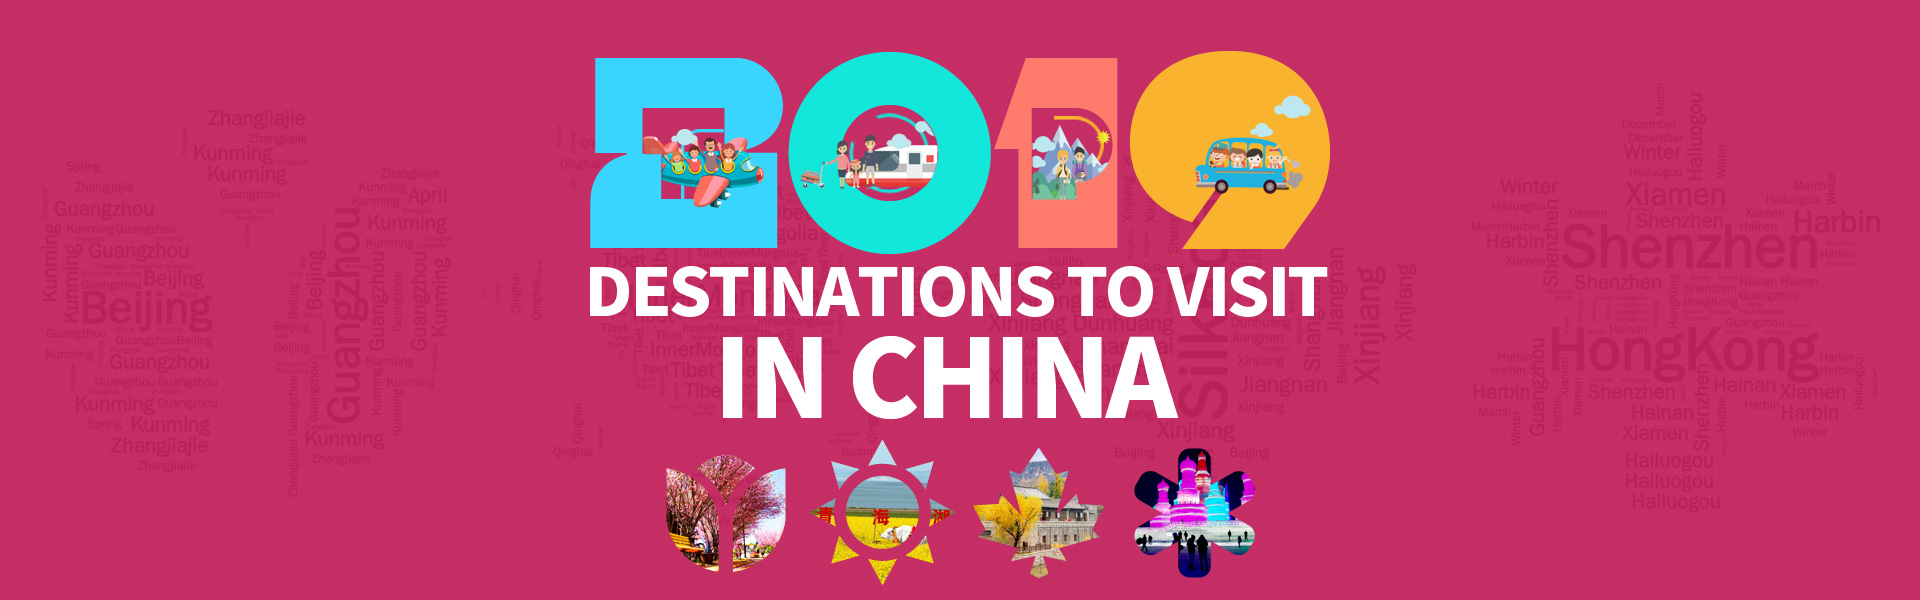 2019 Top Destinations to Visit in China